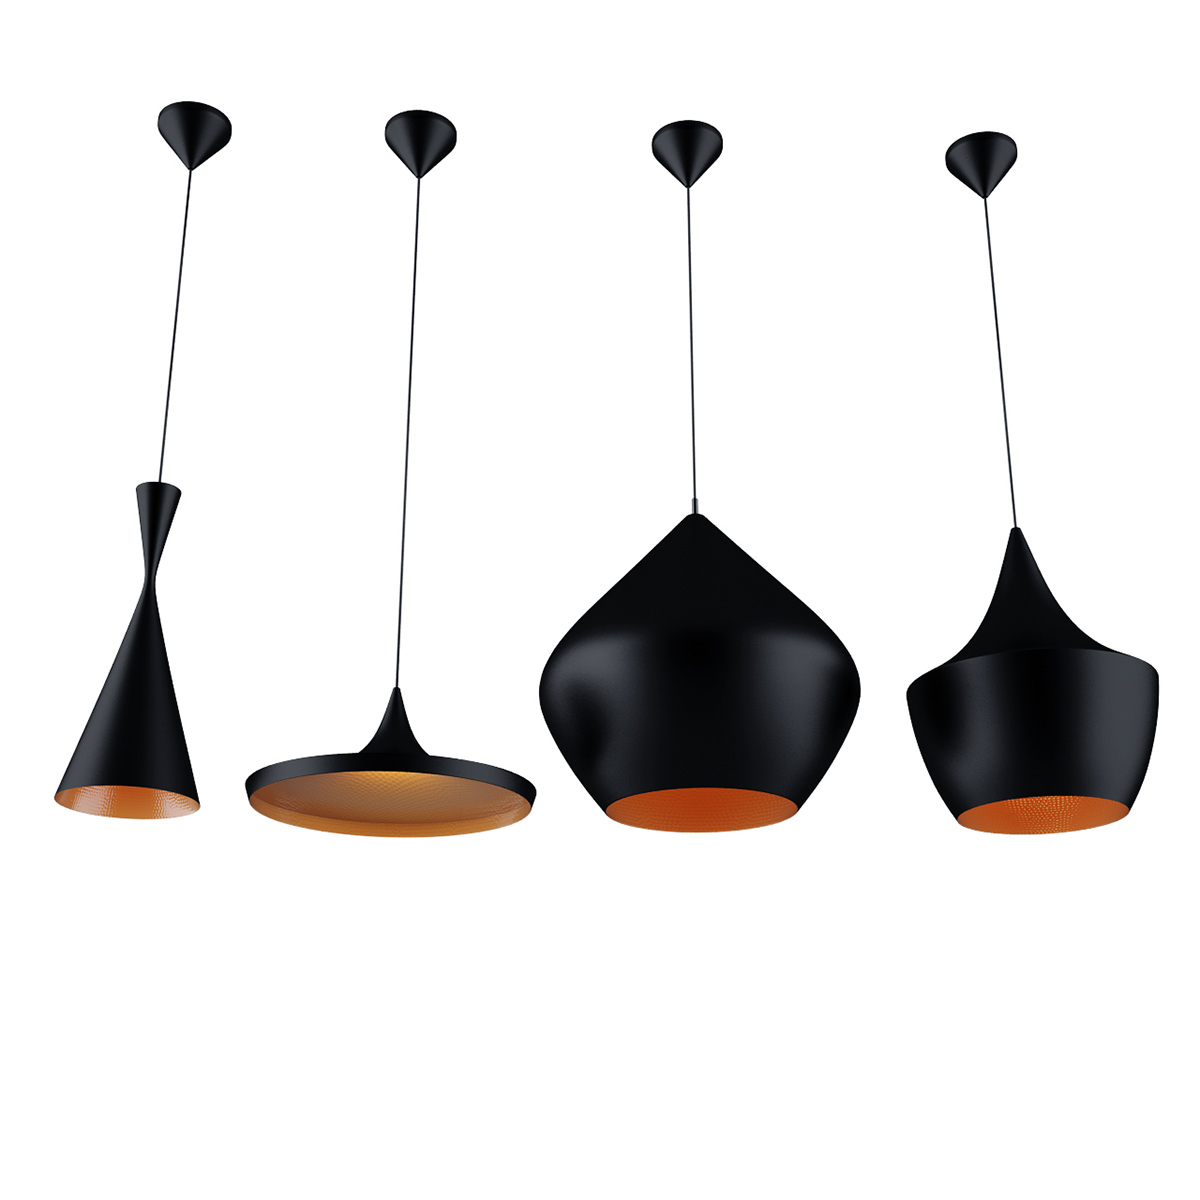 Free 3d model: Beat Lights by Tom Dixon on Behance